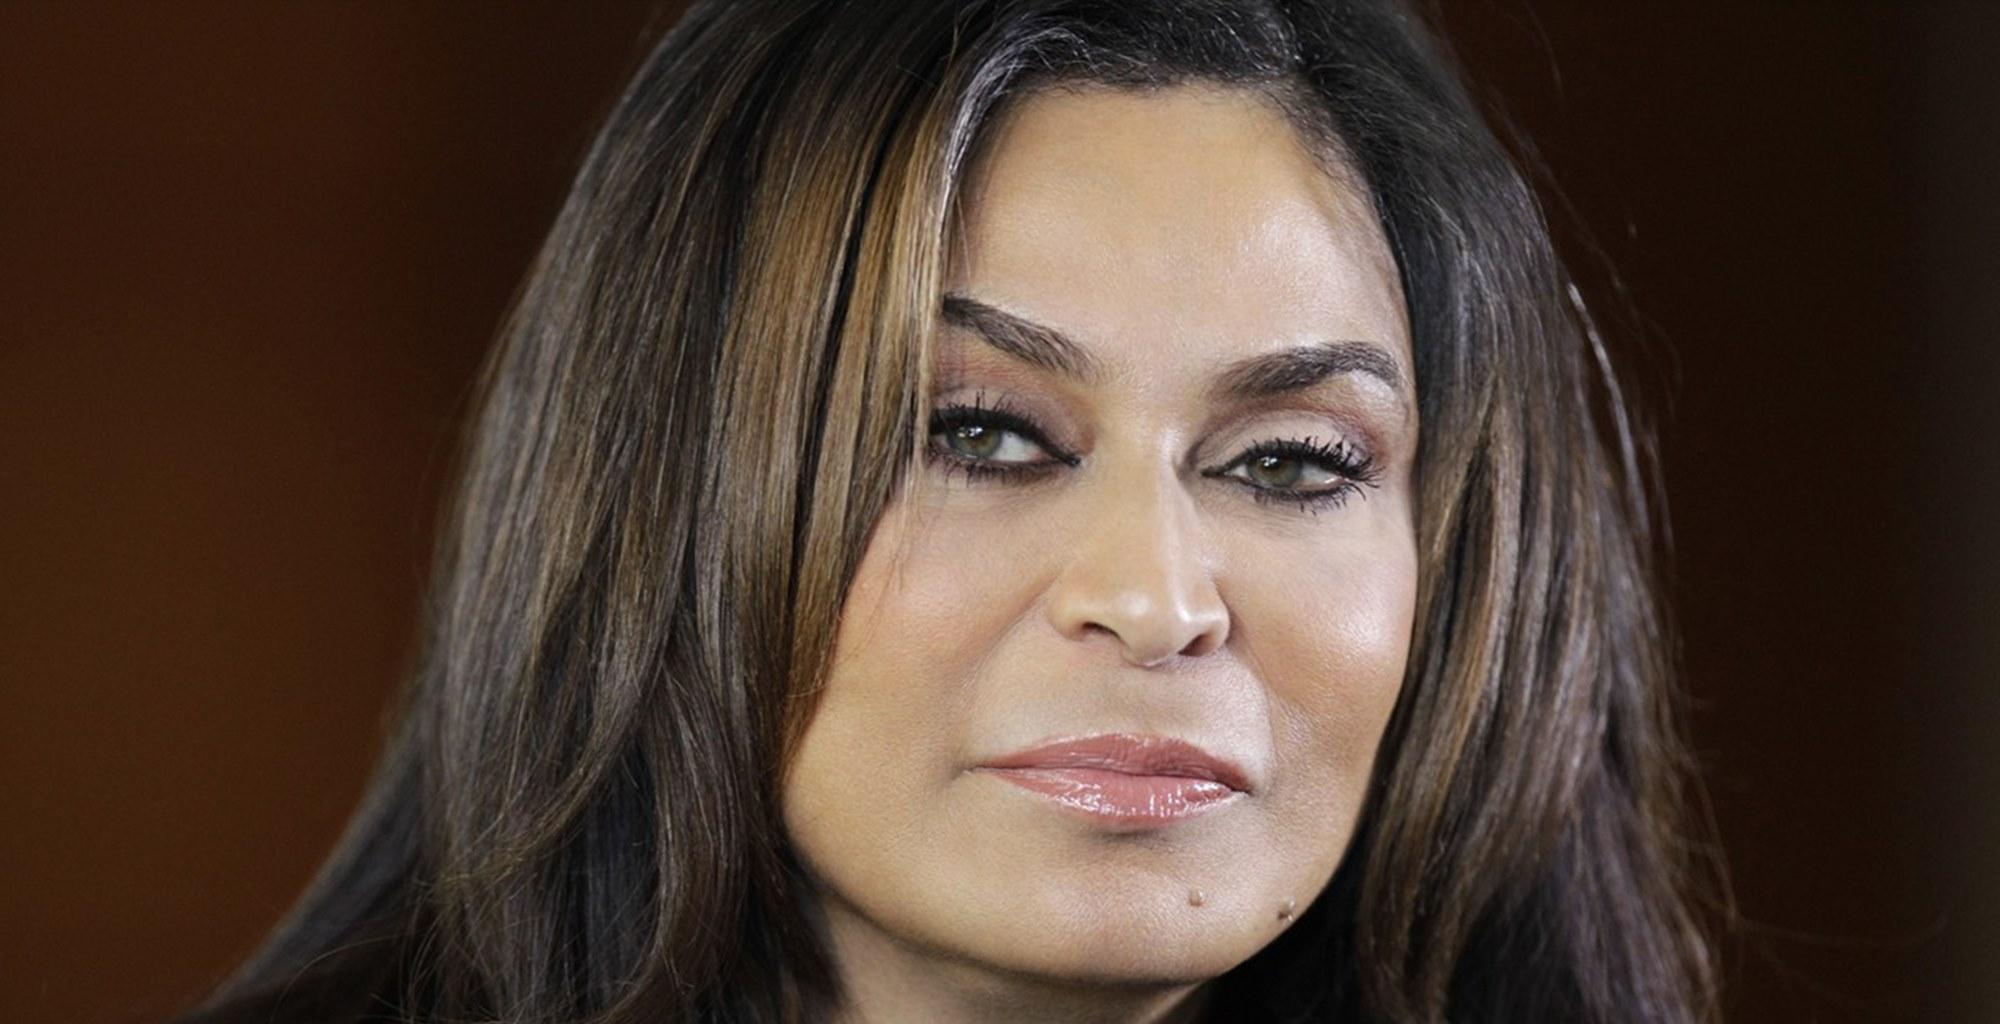 Beyonce's Mother, Tina Knowles, Is Insulted By Critics For This Video, And She Claps Back